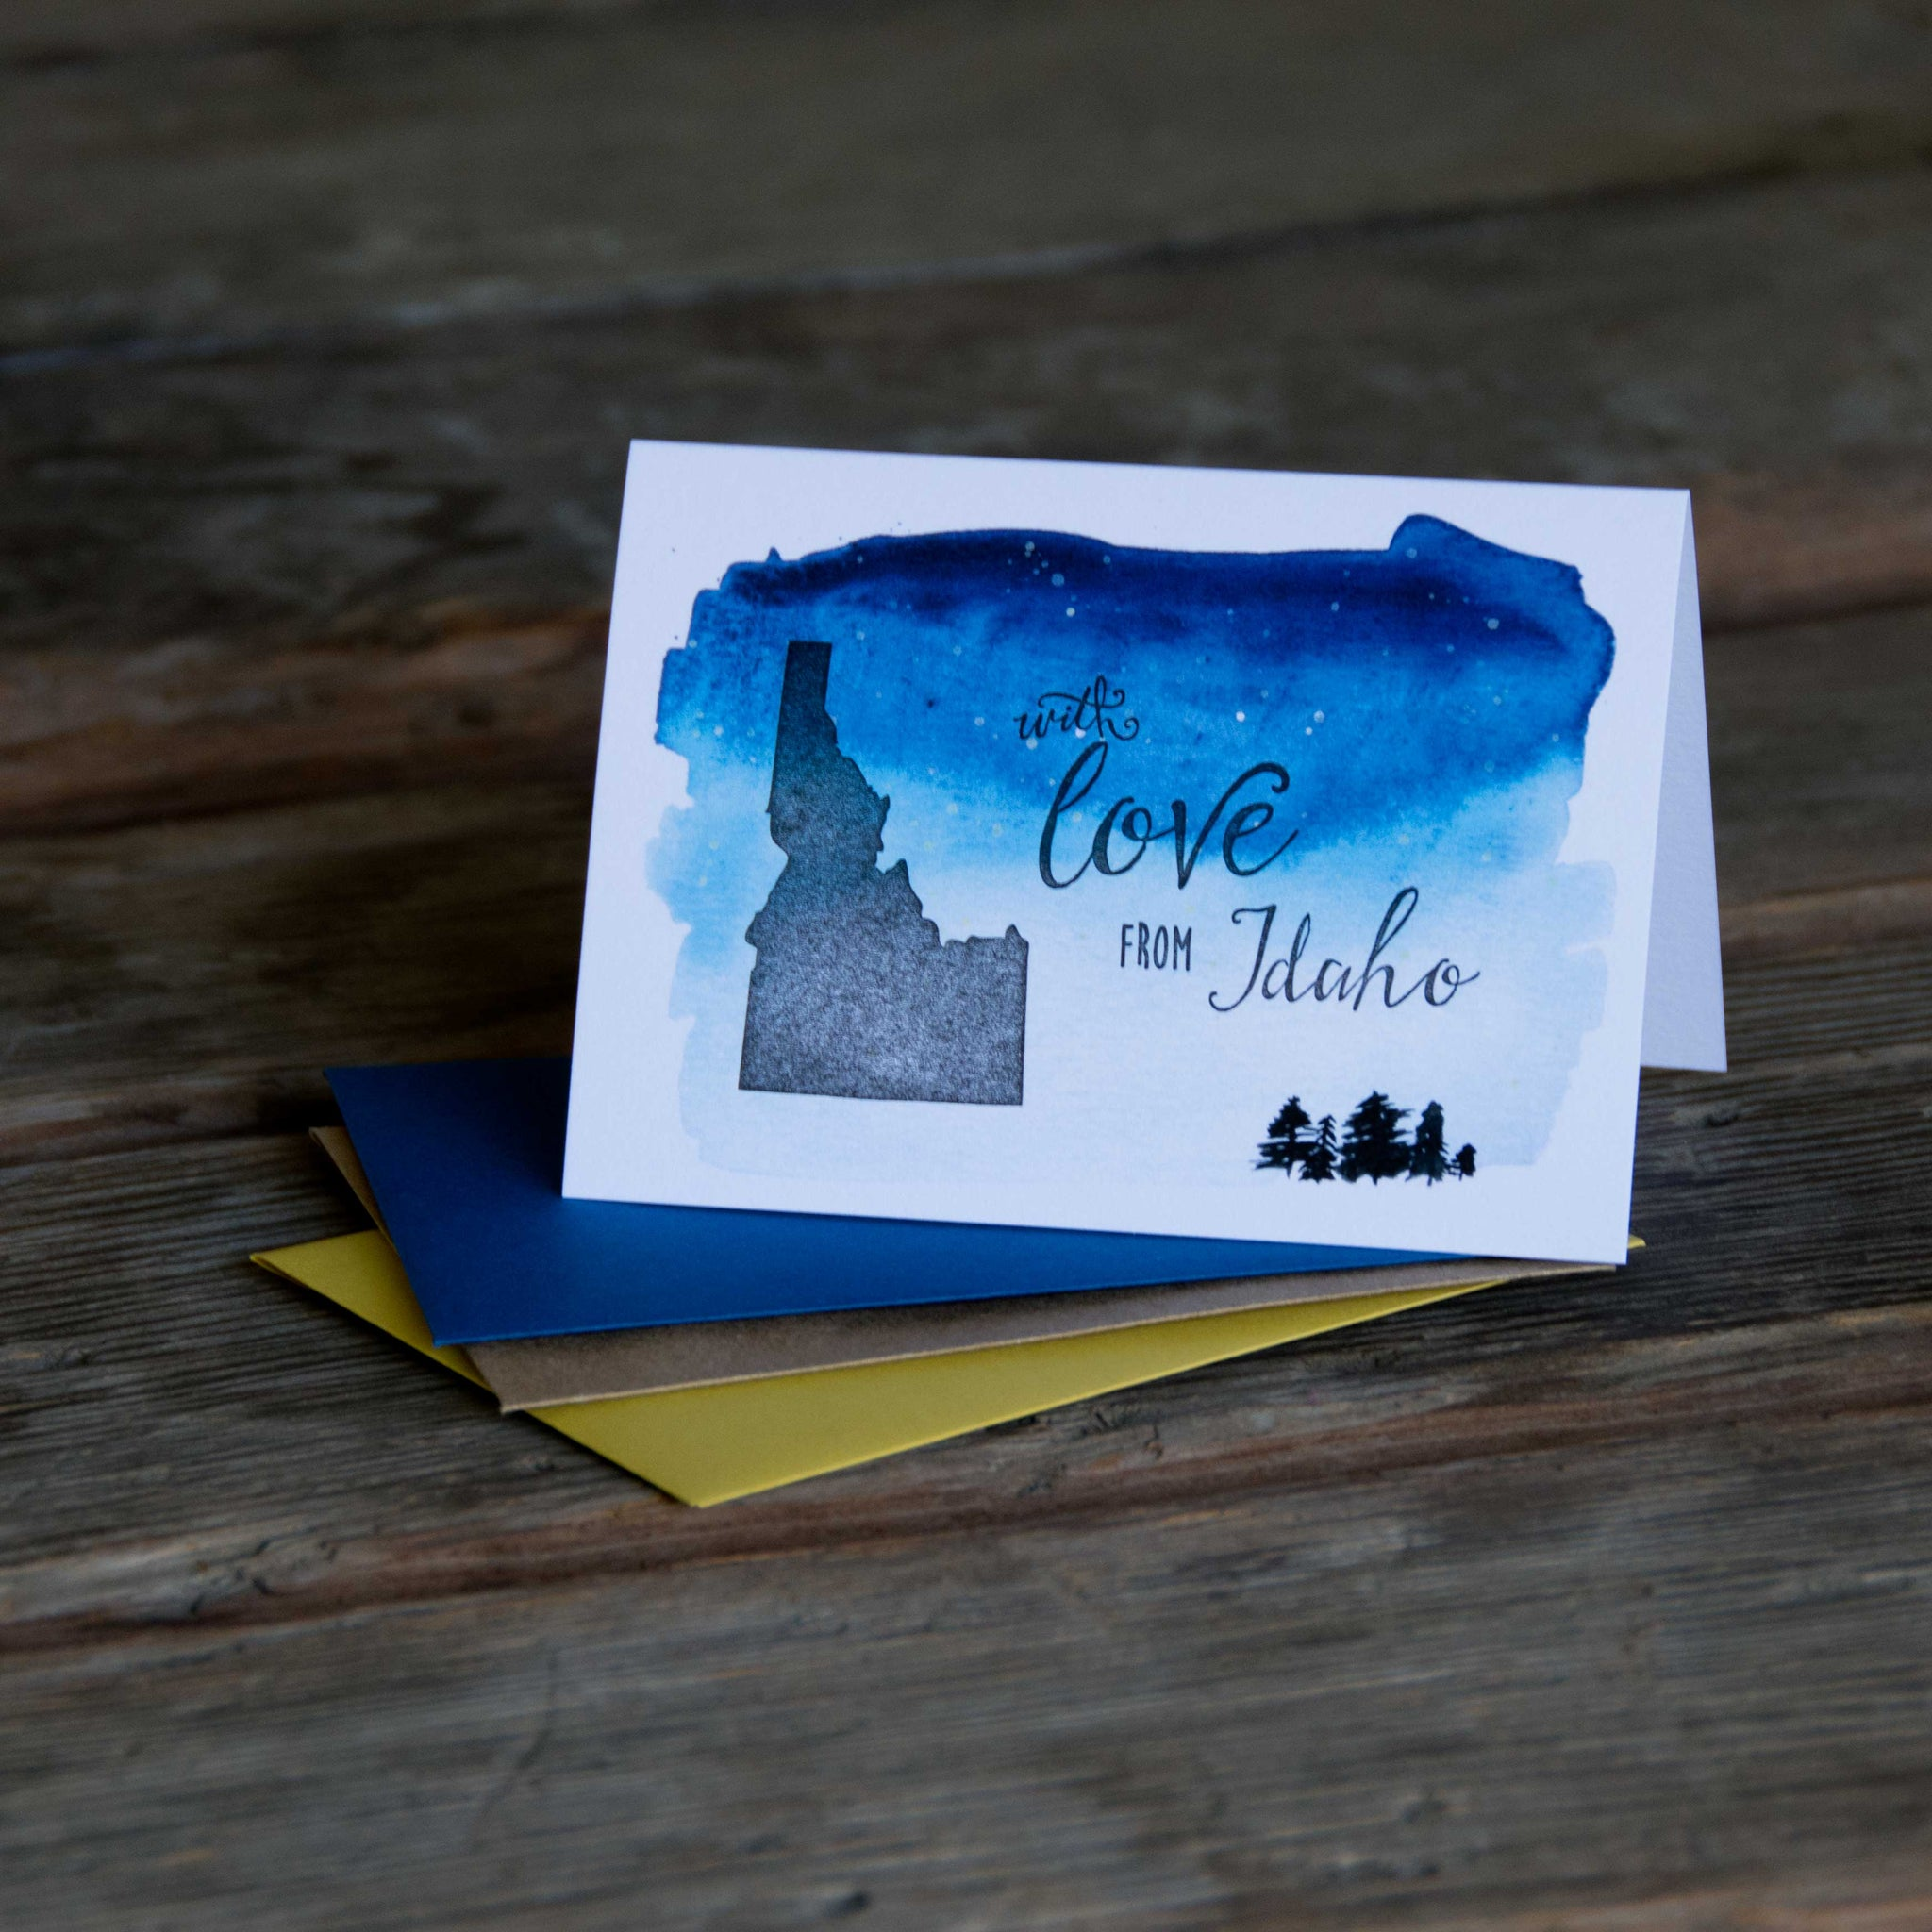 With love from Idaho Starry Night edition card, letterpress printed eco friendly